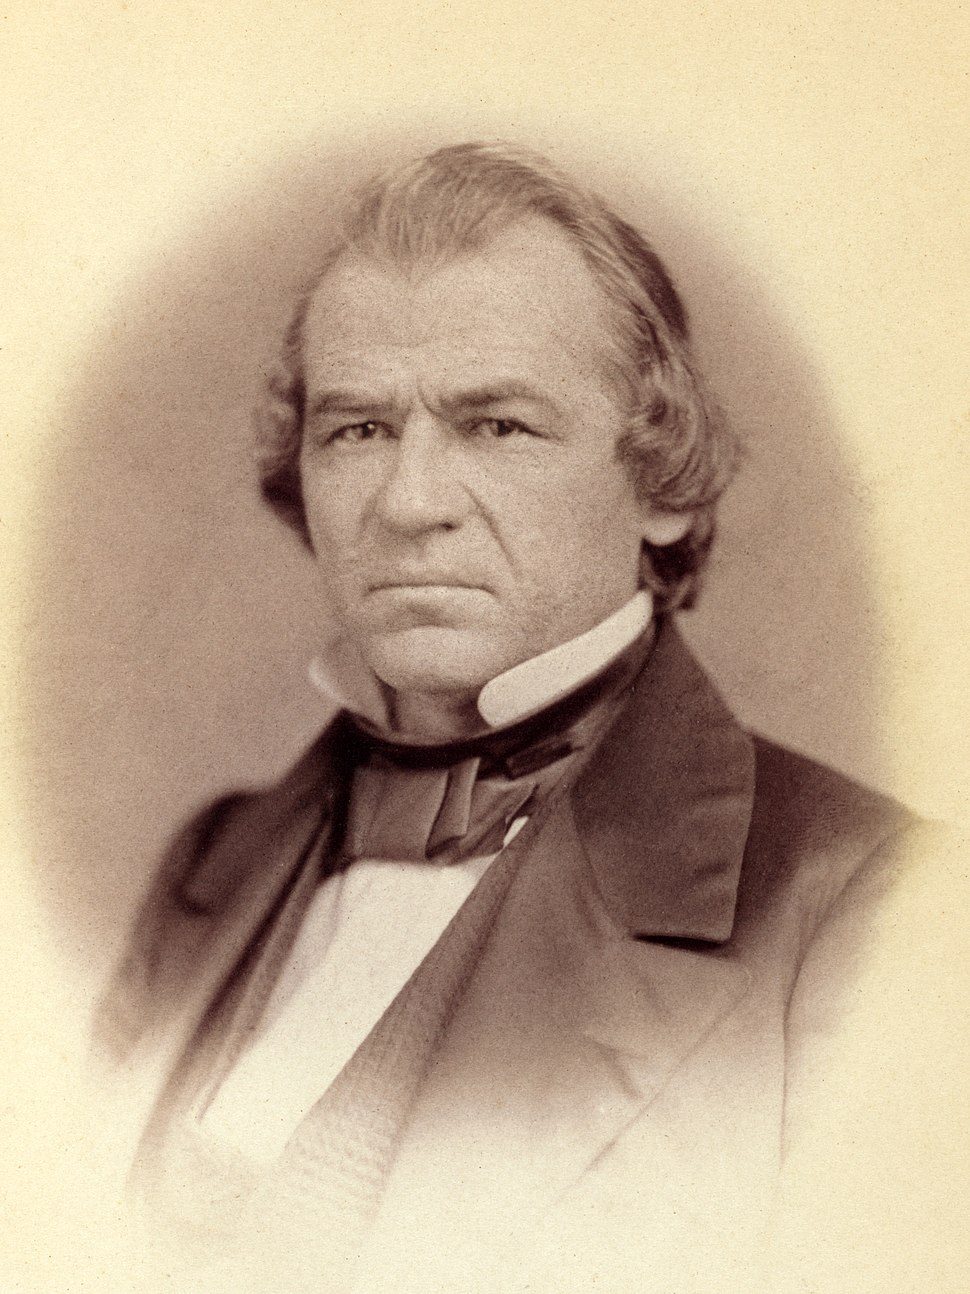 Andrew Johnson by Vannerson, 1859